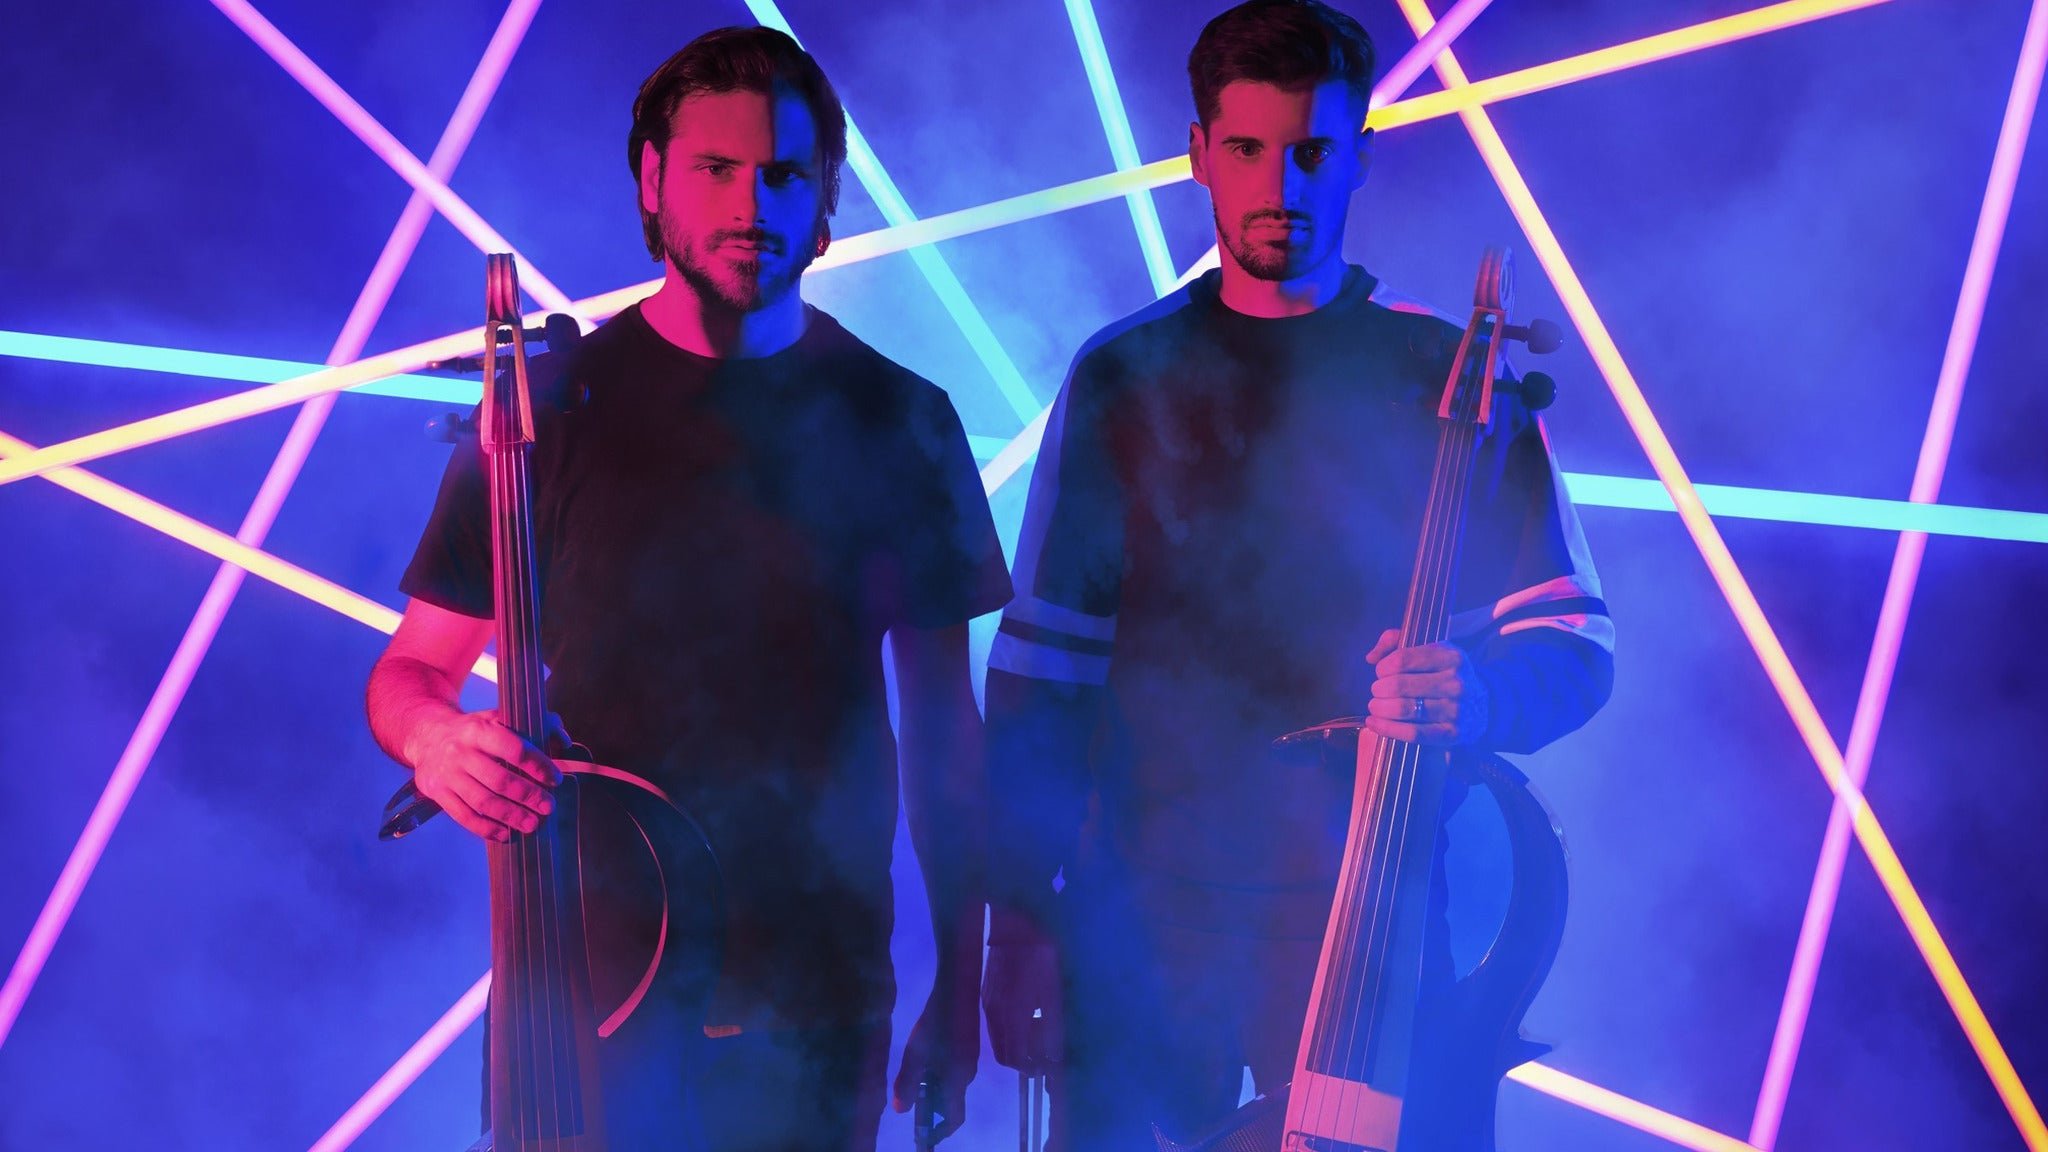 2Cellos at Theater of the Clouds at Moda Center